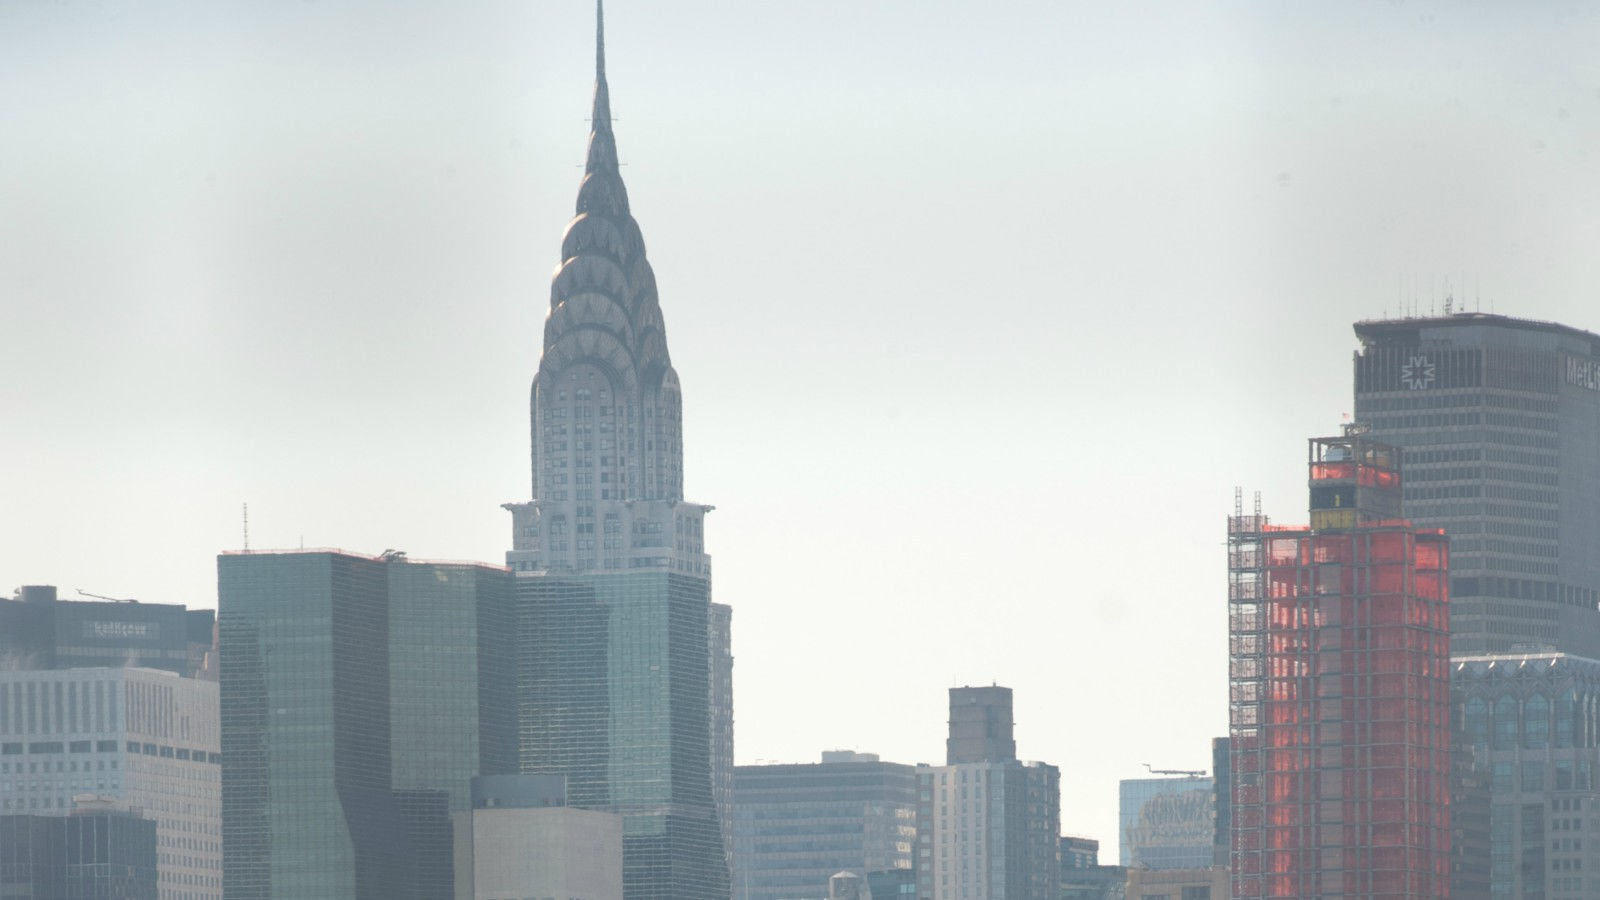 Things to Do in NYC | The Chrysler Building